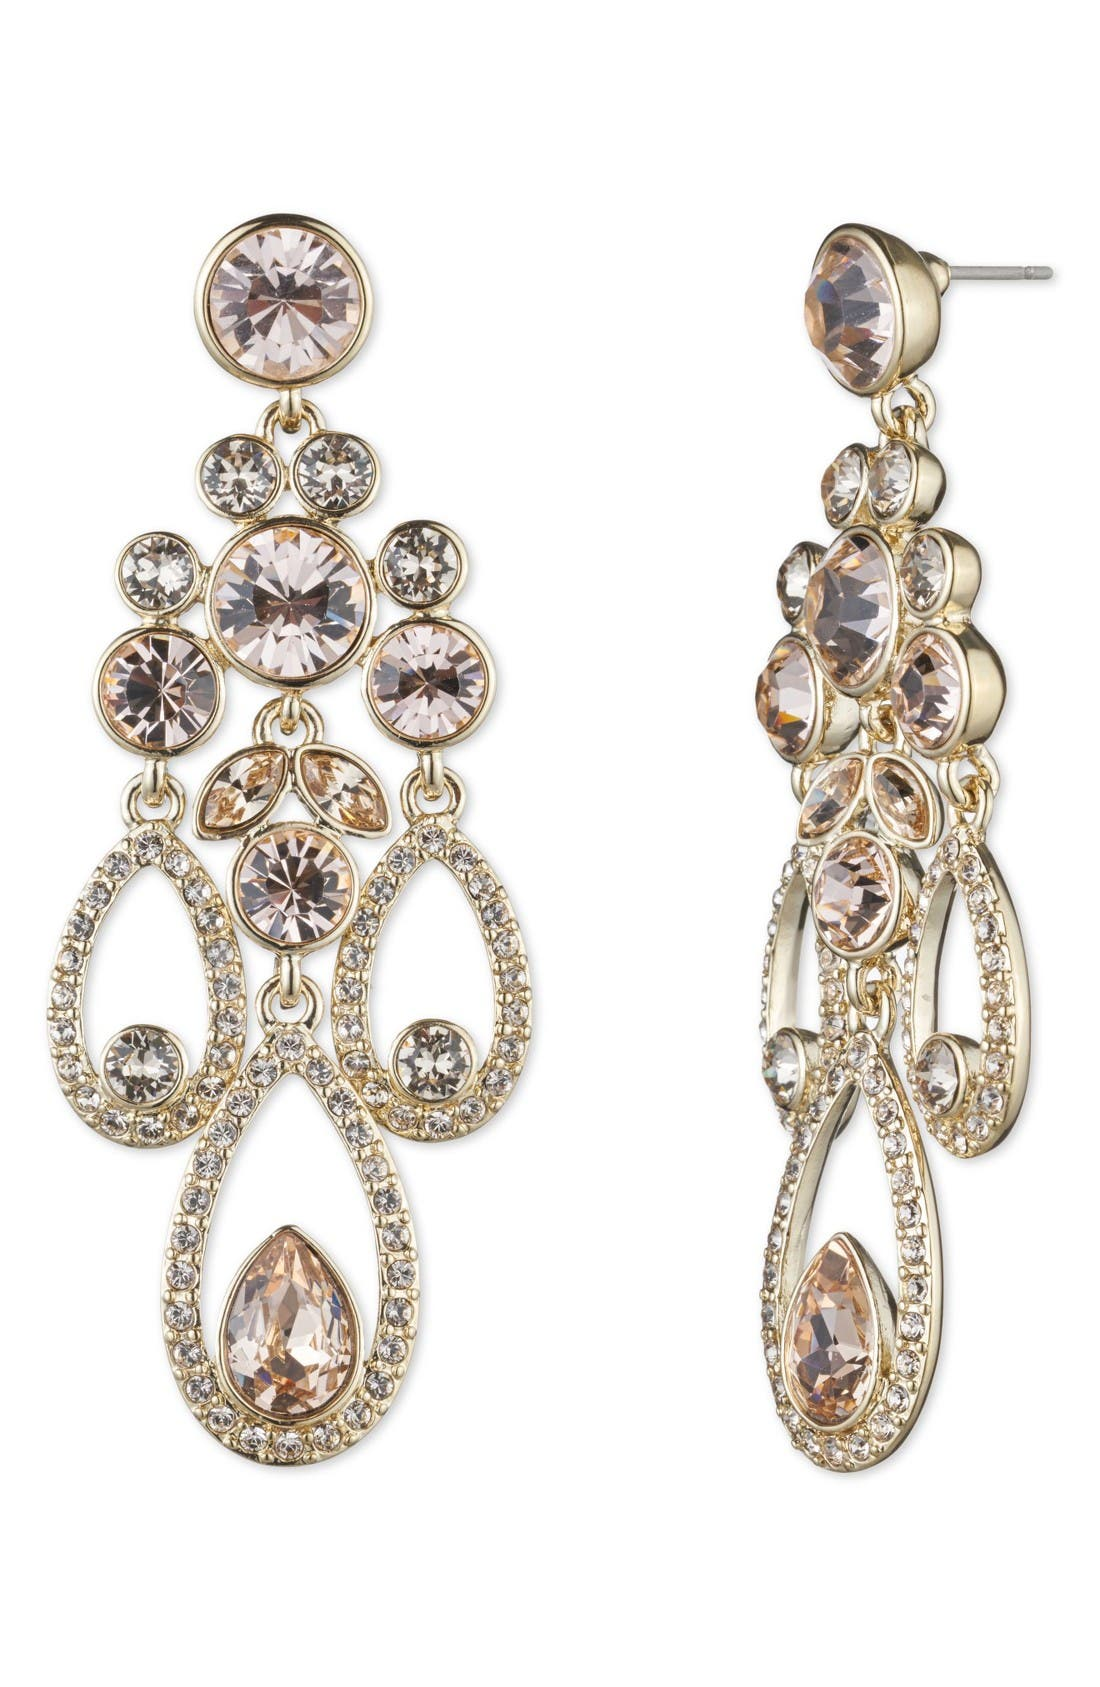 Main Image - Givenchy Drama Chandelier Crystal Earrings